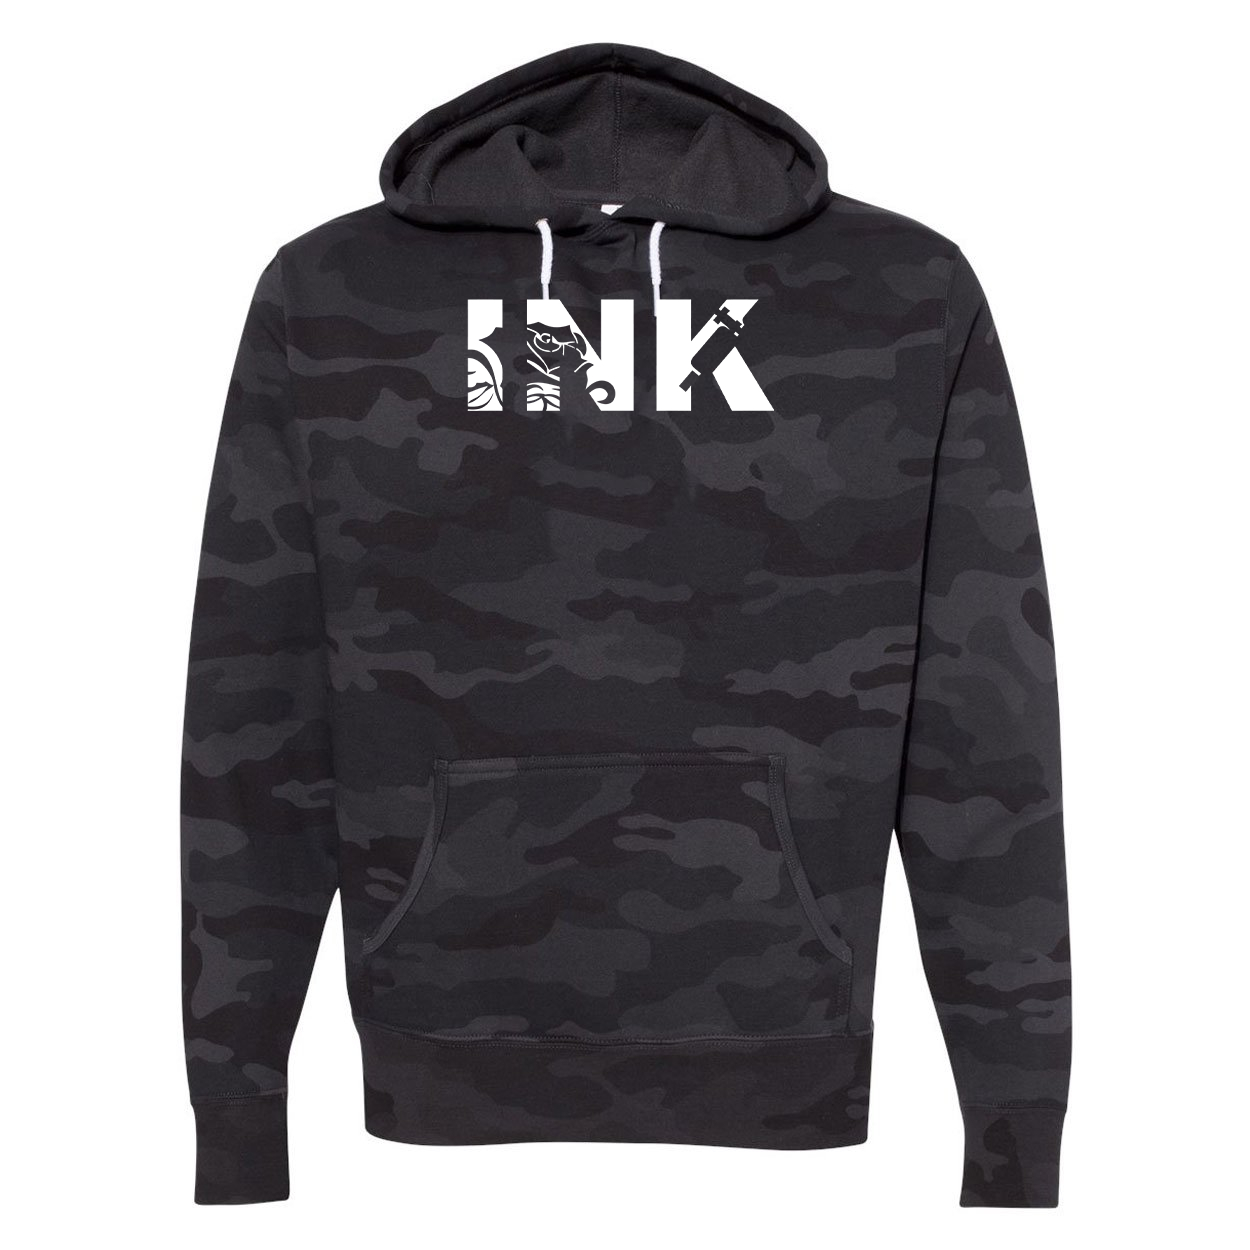 Ink Tattoo Logo Classic Unisex Hooded Sweatshirt Black Camo (White Logo)